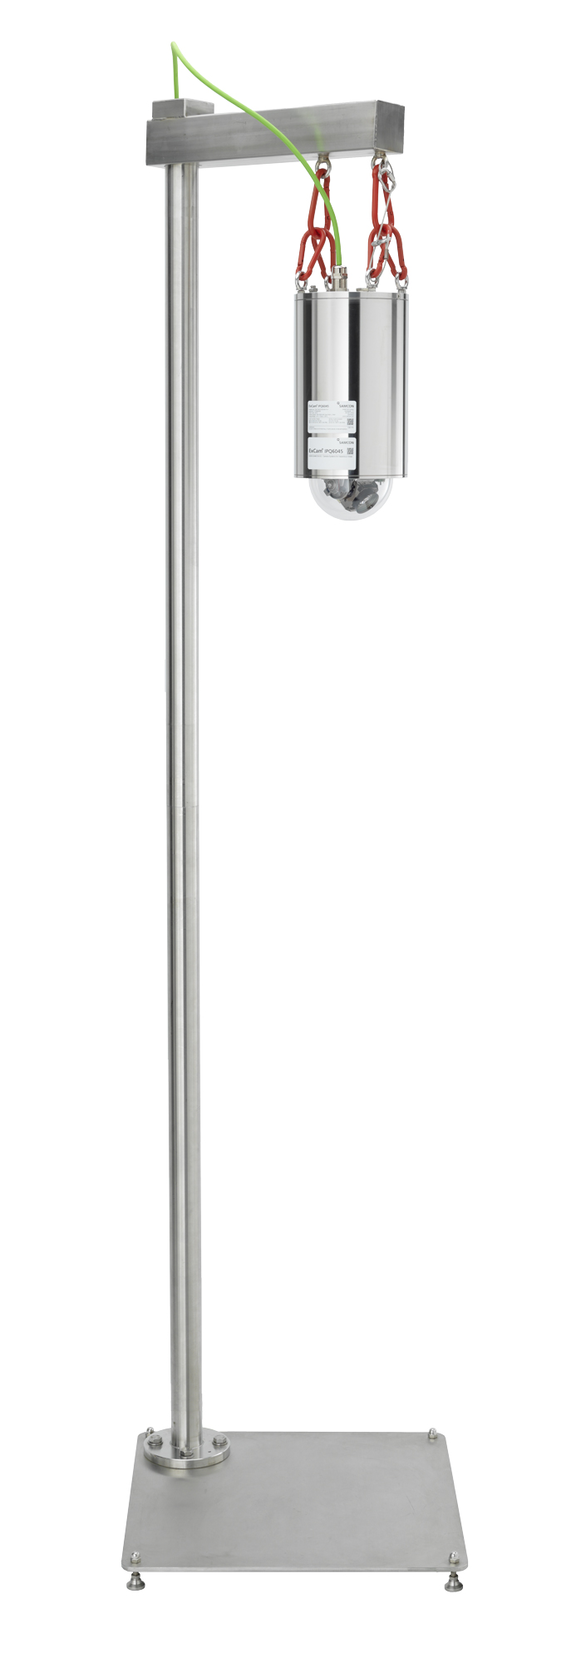 ExCam-IPQ6045-Pole-Mounted.jpg